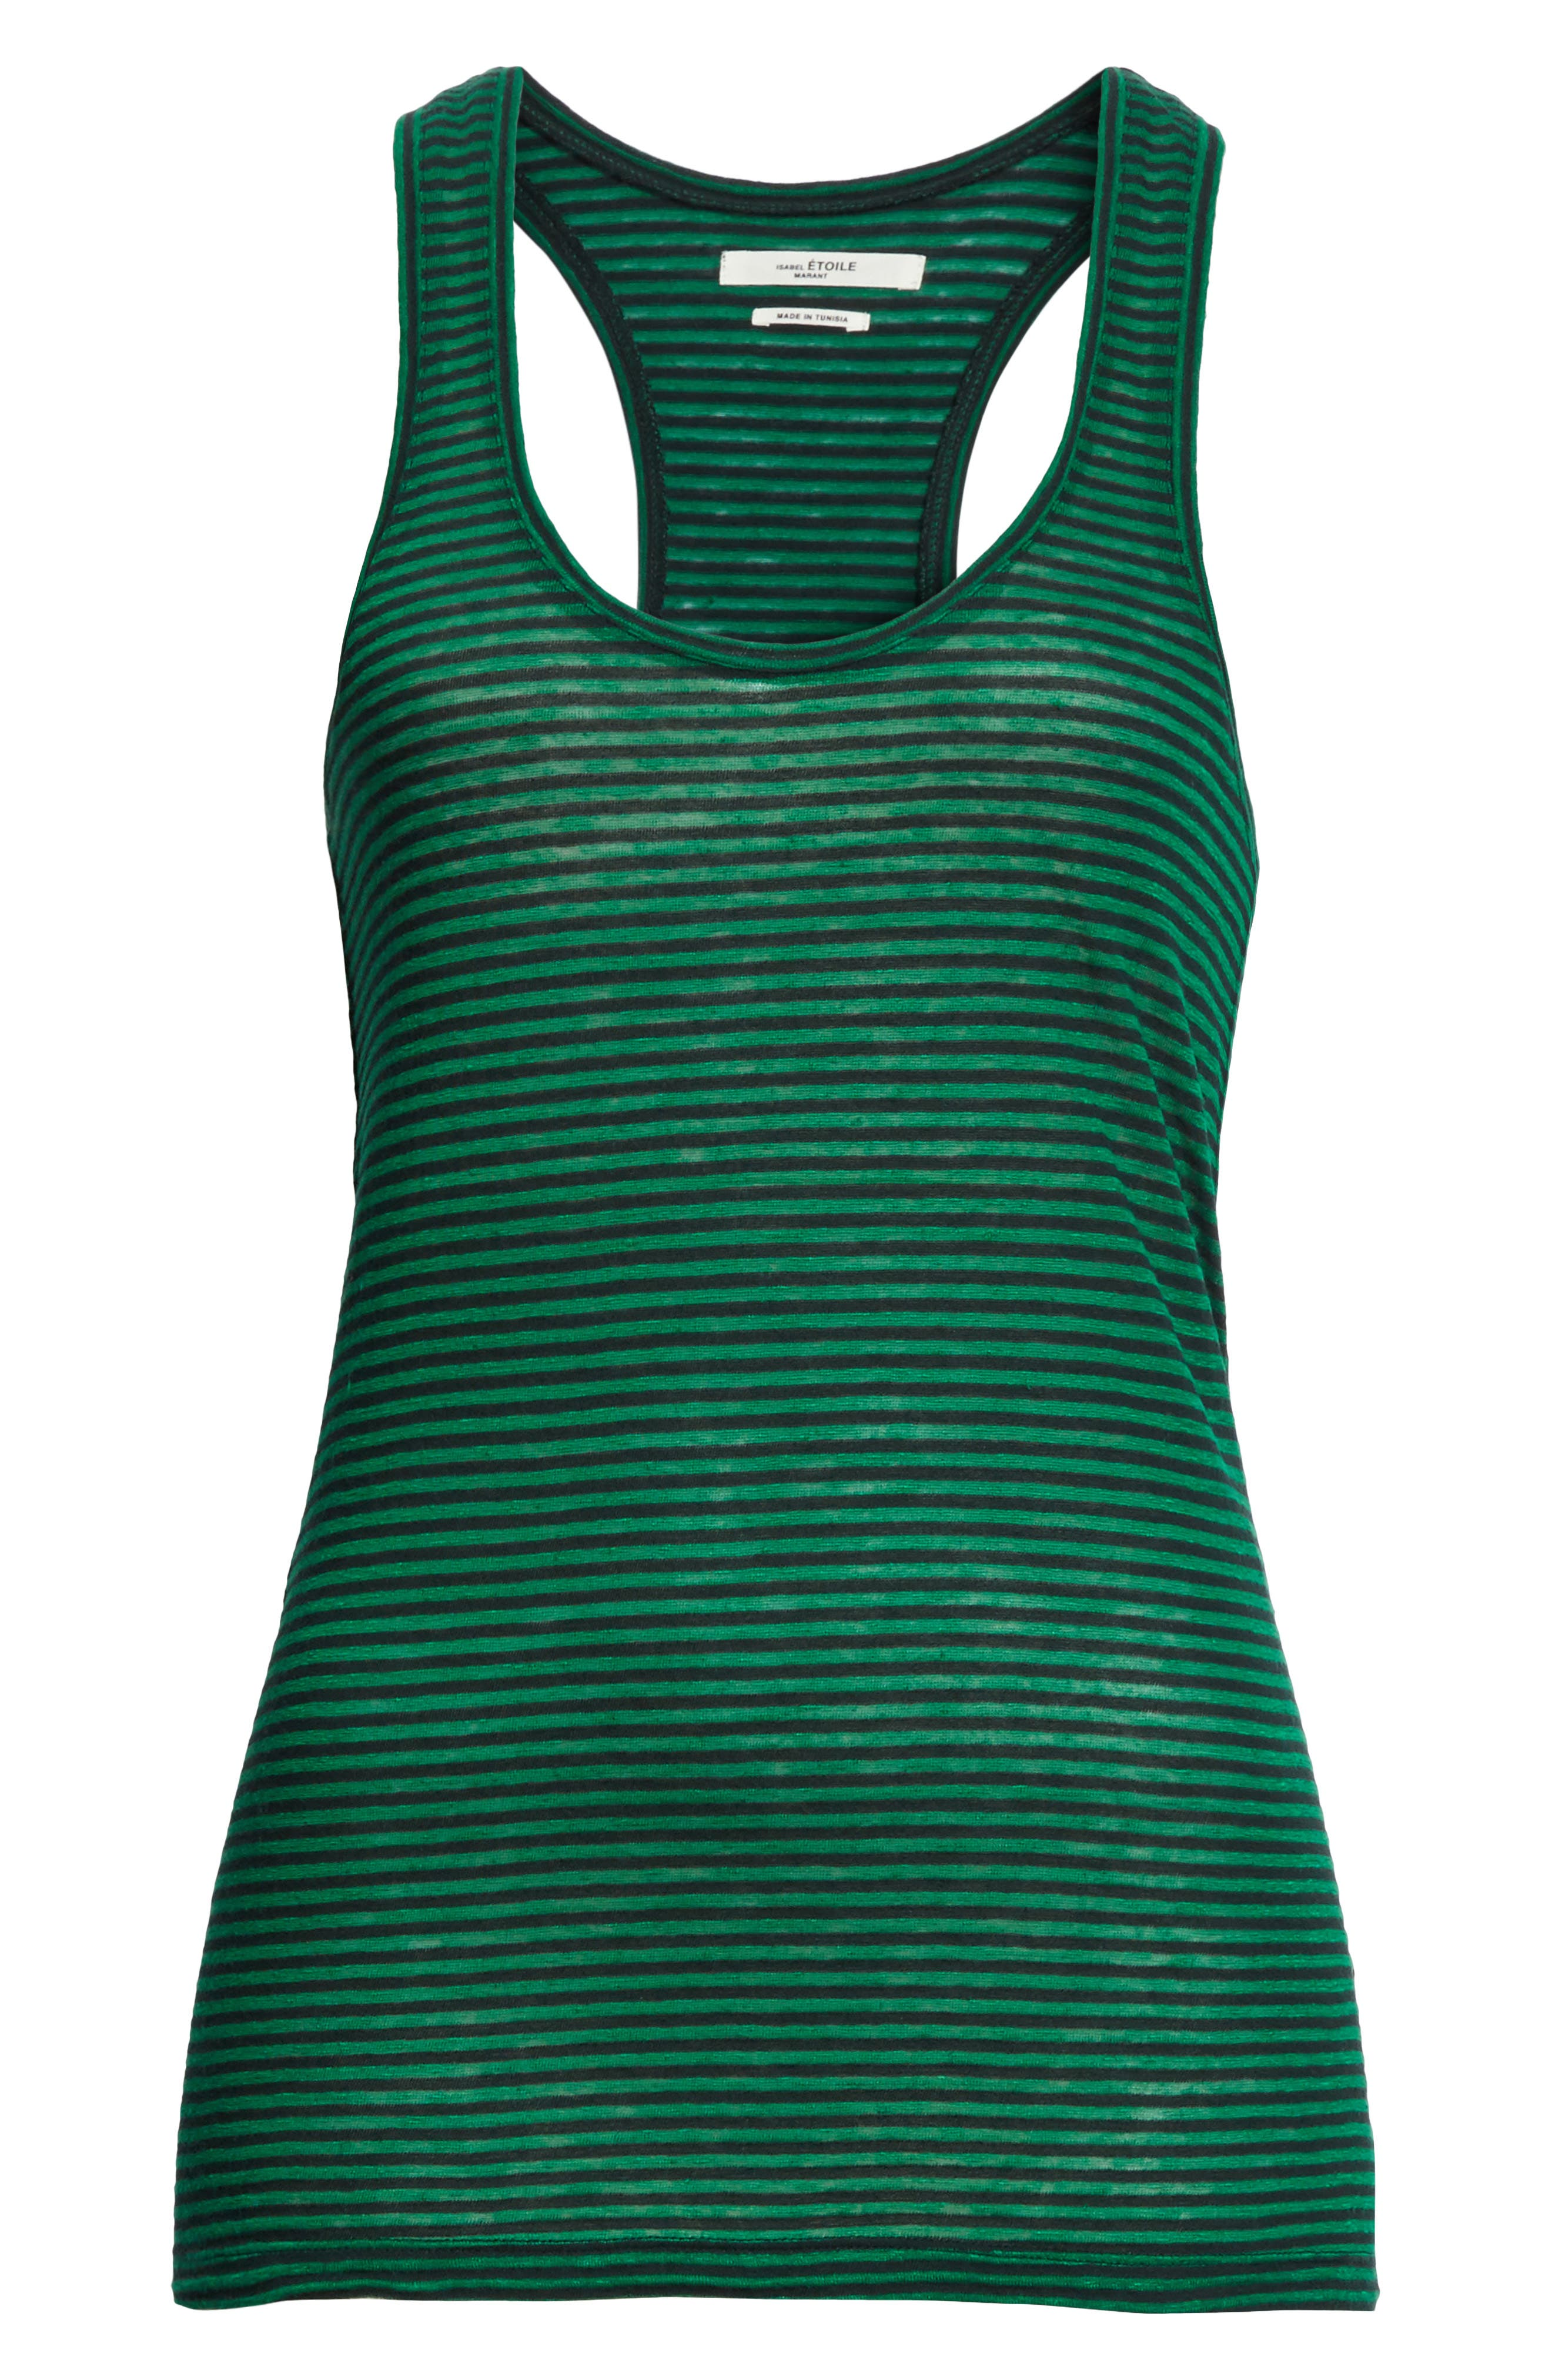 Isabel Marant Étoile Avien Stripe Cotton & Linen Tank,                             Alternate thumbnail 6, color,                             Green